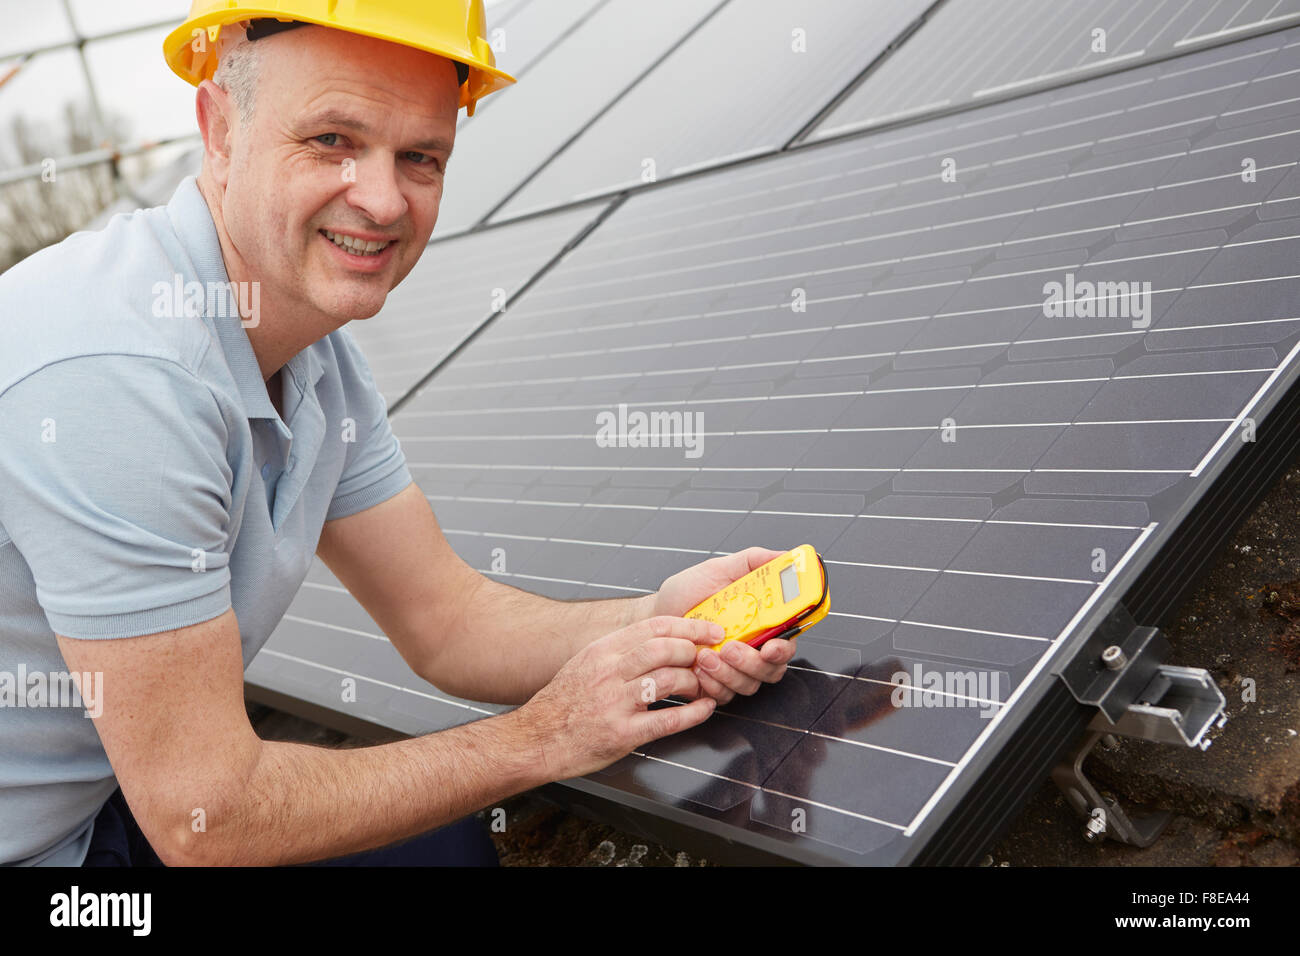 Engineer Installing Solar Panels On Roof Of House - Stock Image